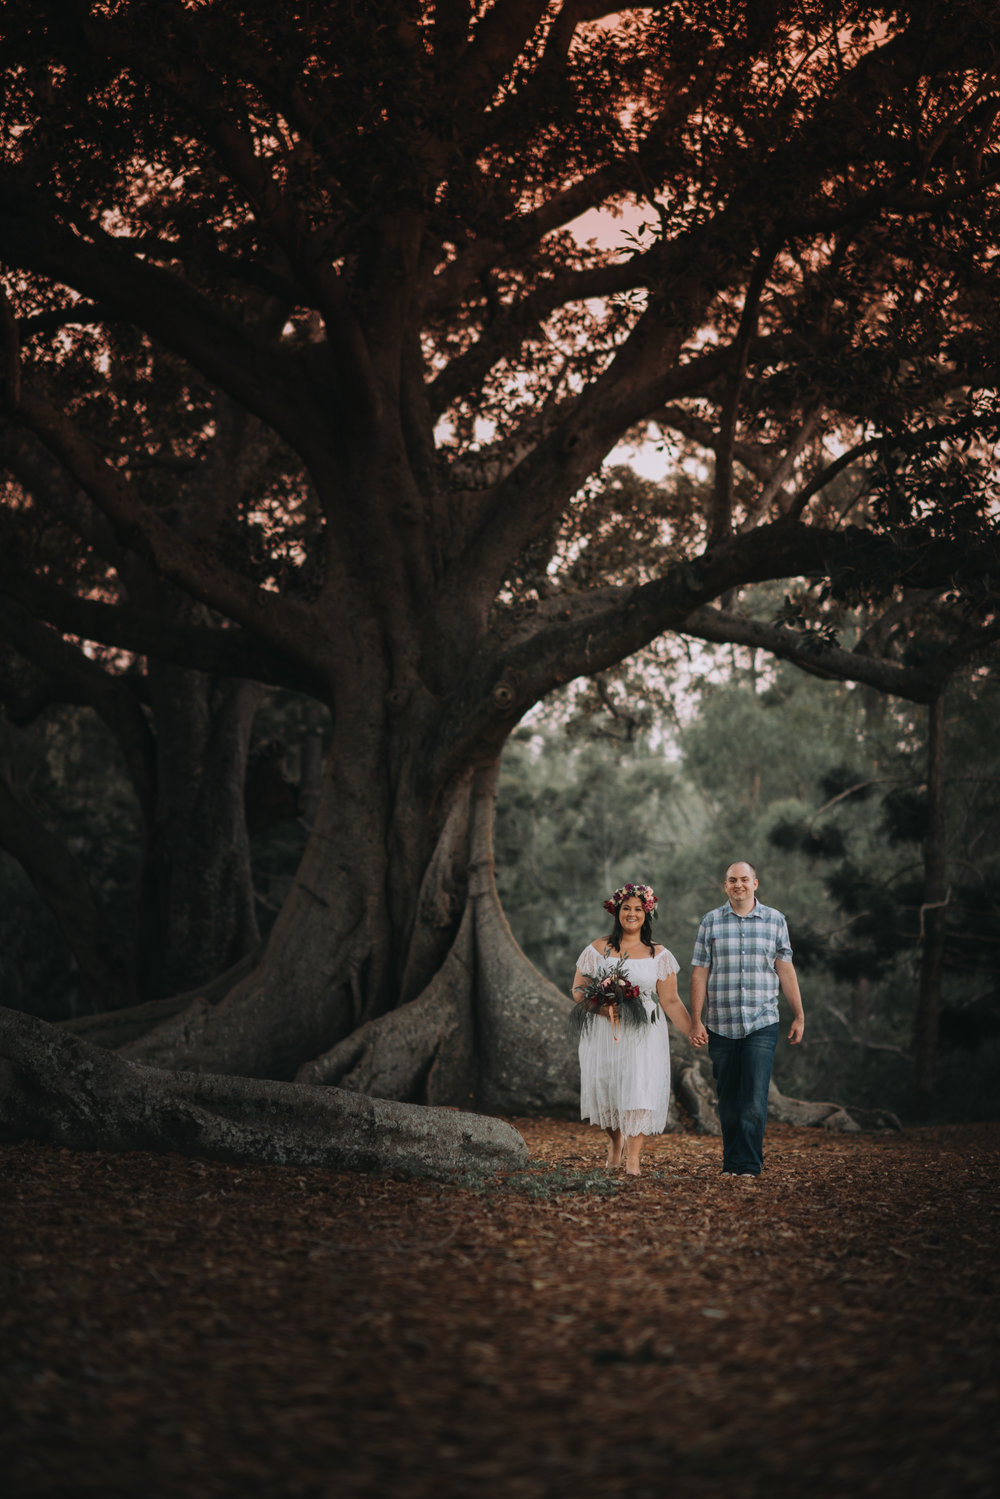 Engagement Photoshoot Inspiration Brisbane Wedding Photography Confetti Bright Flowers Bouquet Floral Crown Old Petrie Town Sunset Fig Trees Lovelenscapes Photography www.lovelenscapes.com